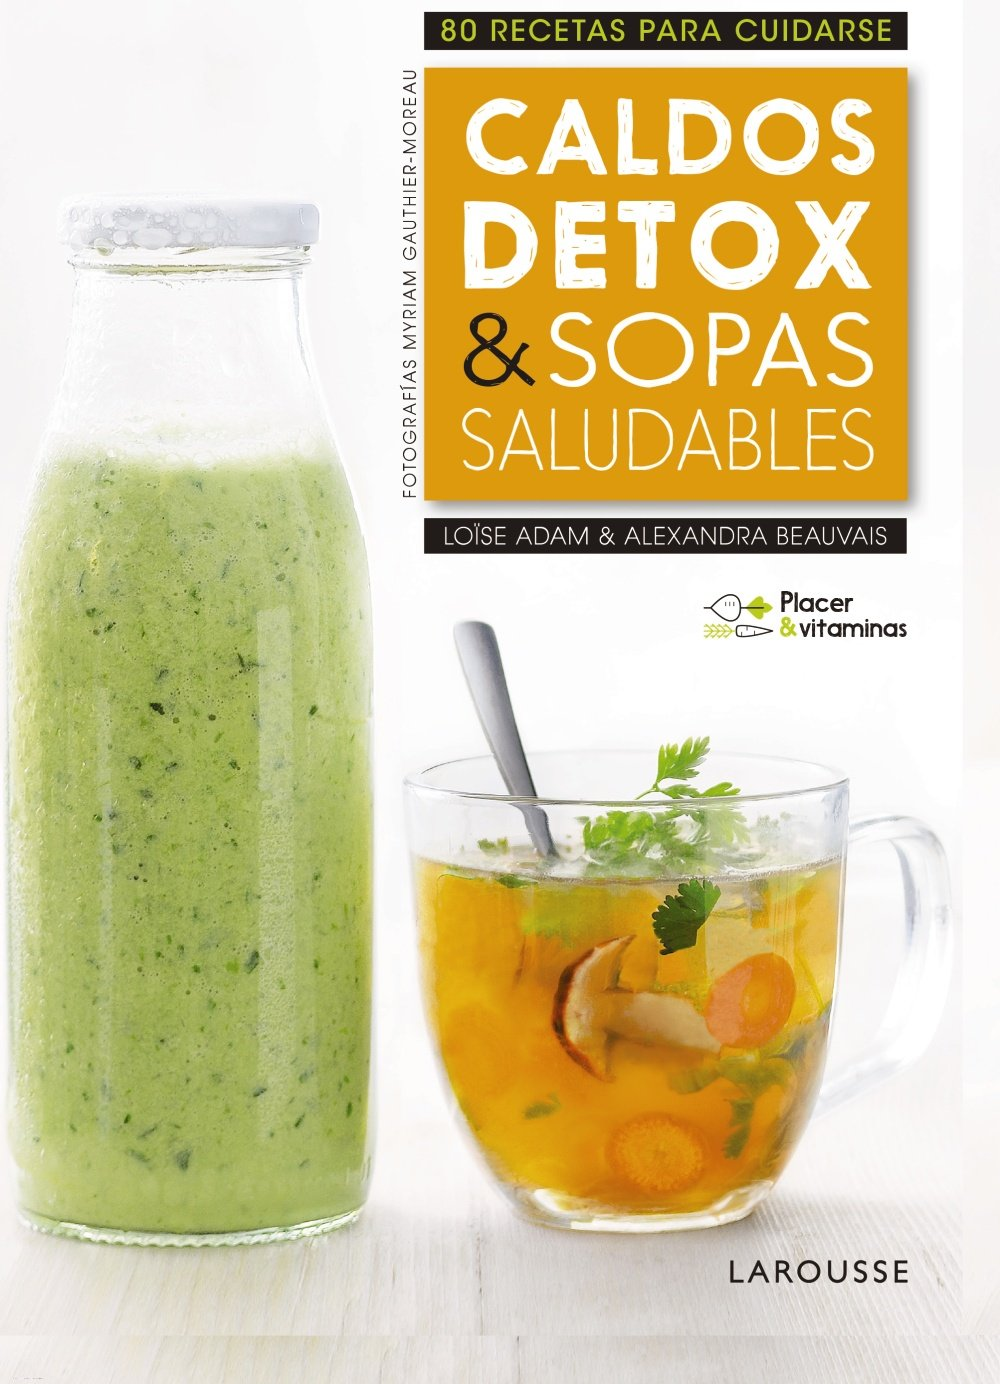 Placer & vitaminas: Caldos detox & sopas saludables: 9788416984978: Amazon.com: Books